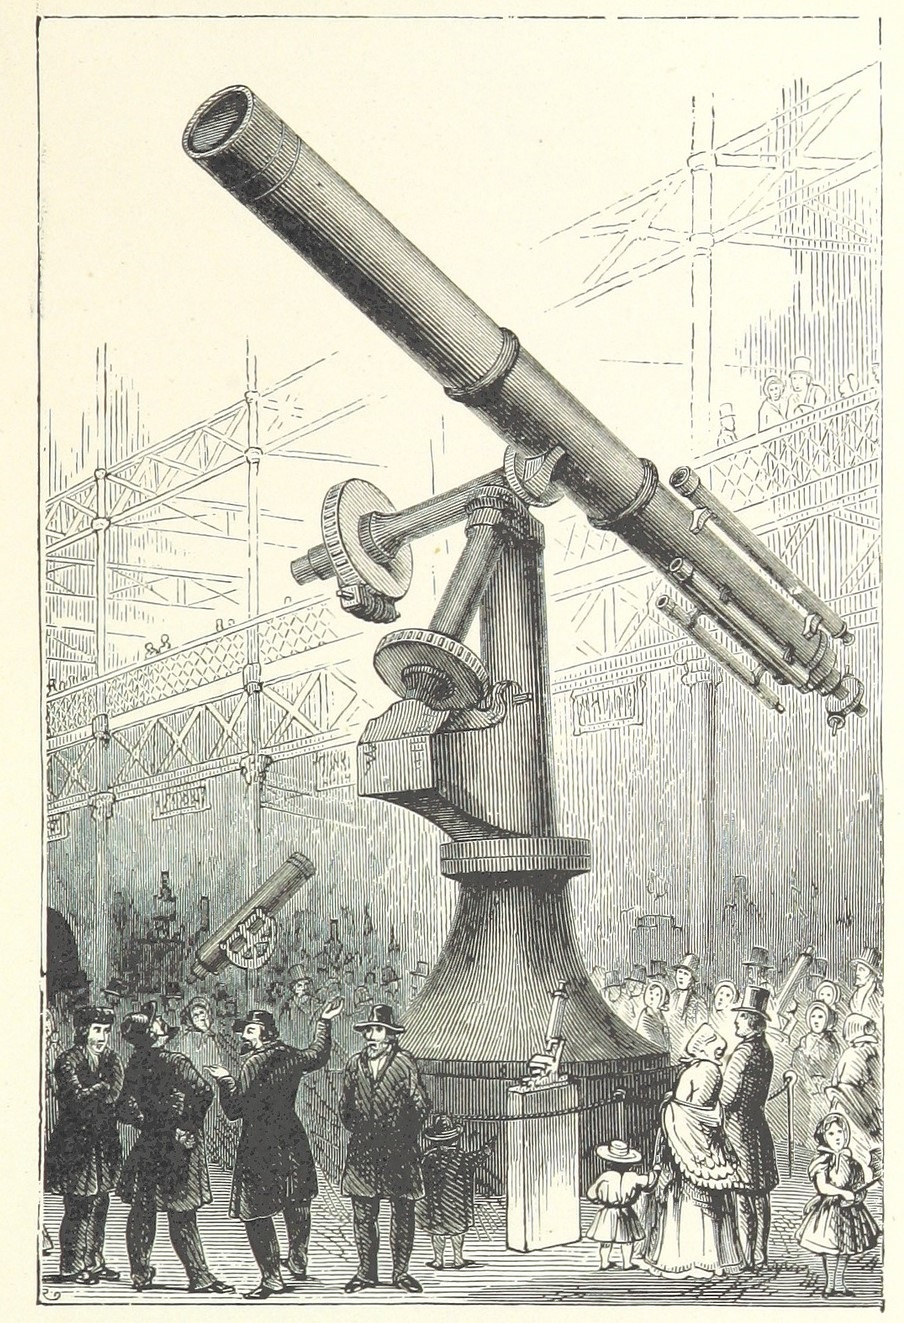 Northampton Telescope Joke Image British Library